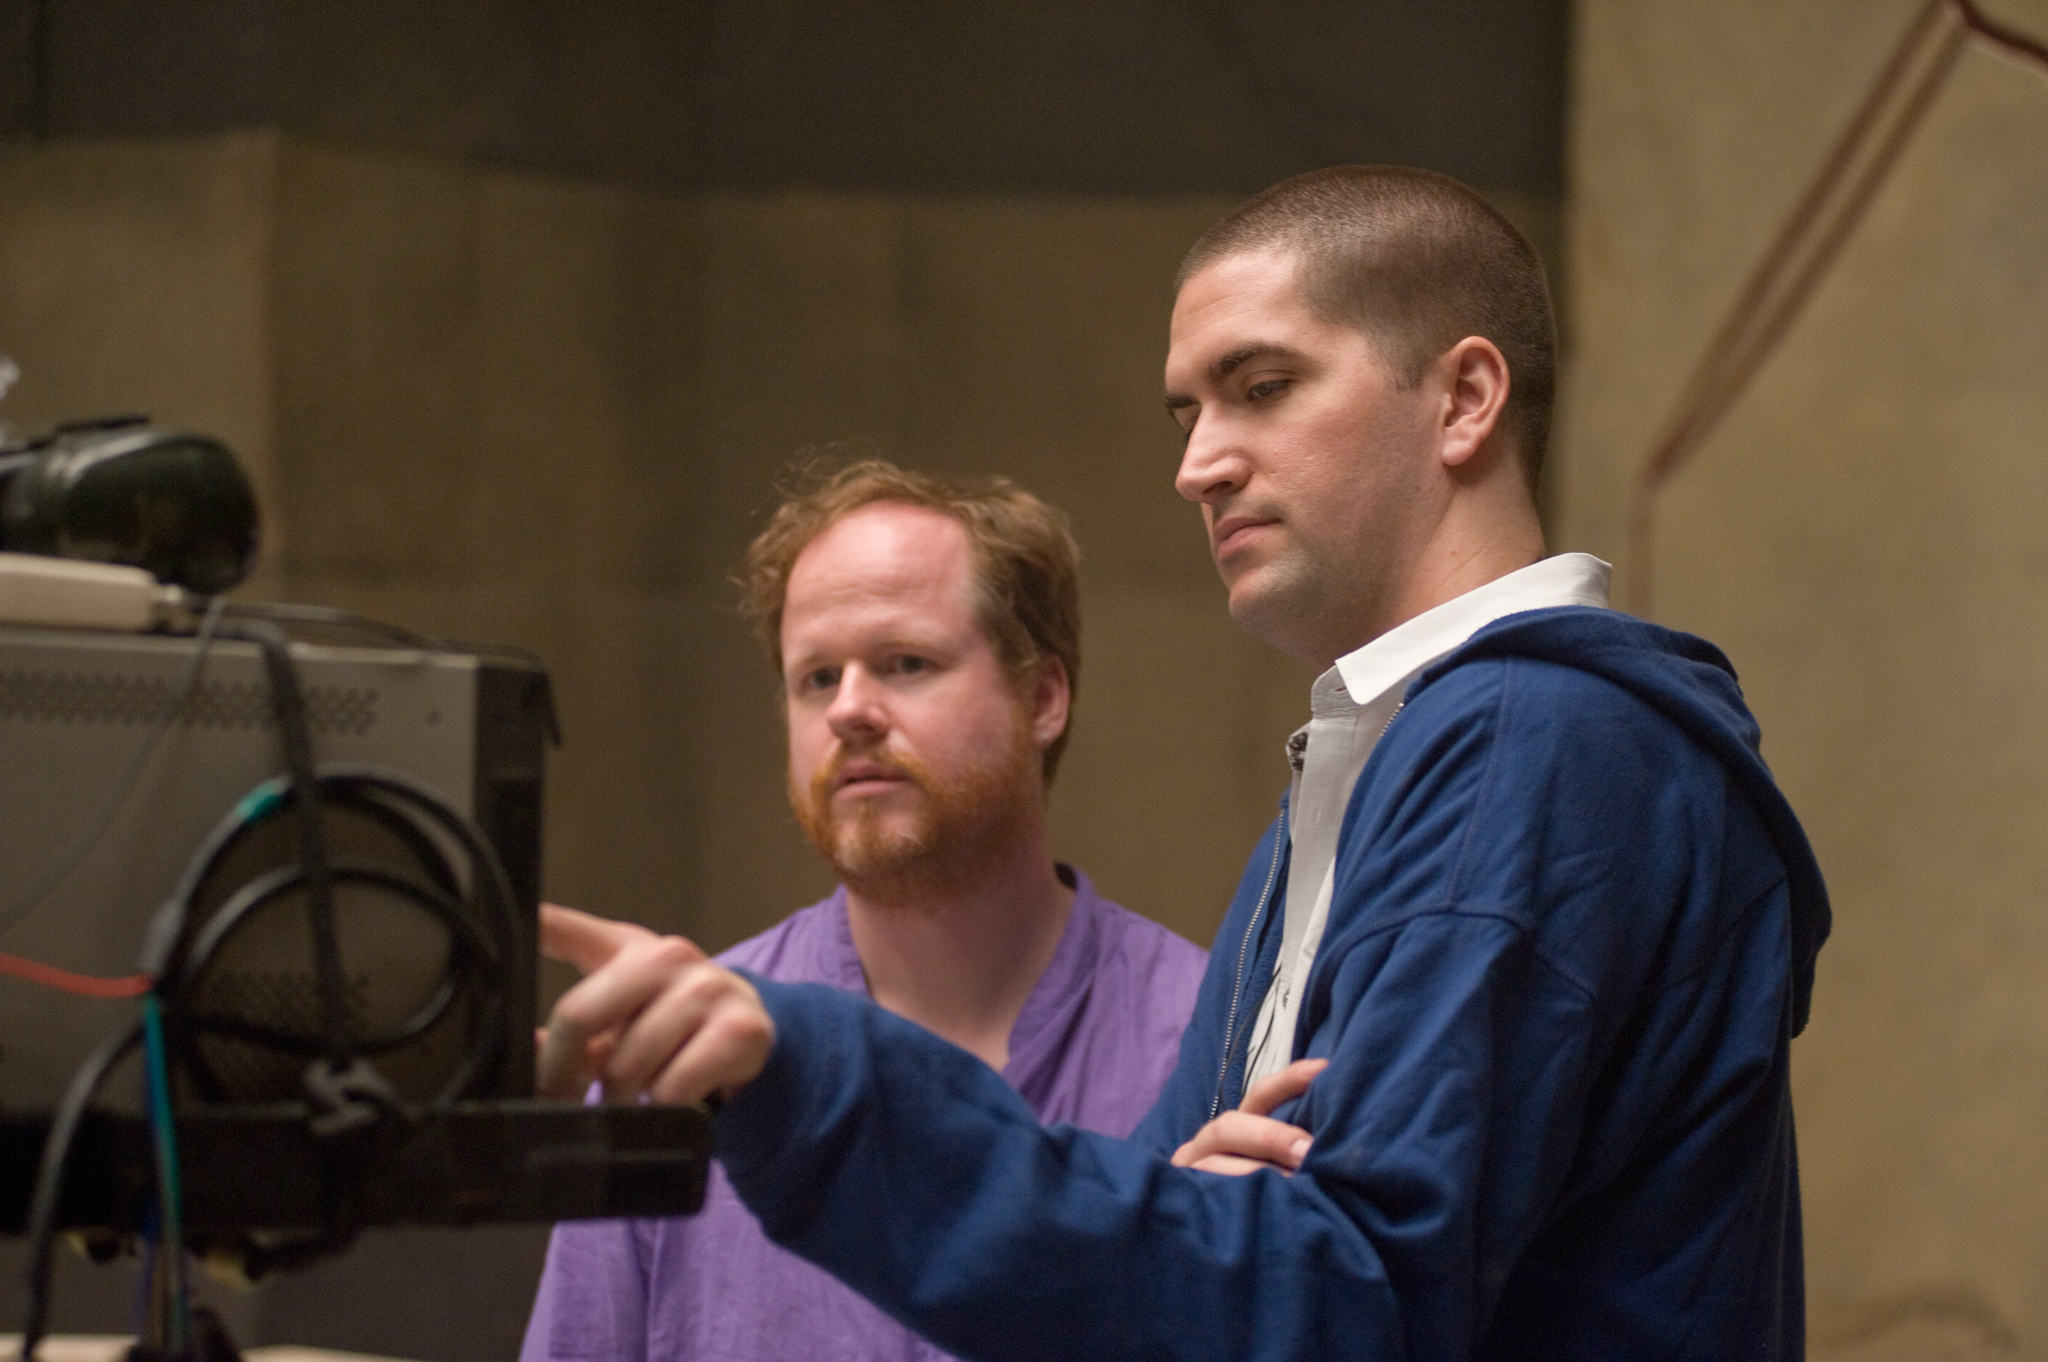 Joss Whedon and Drew Goddard in The Cabin in the Woods (2011)